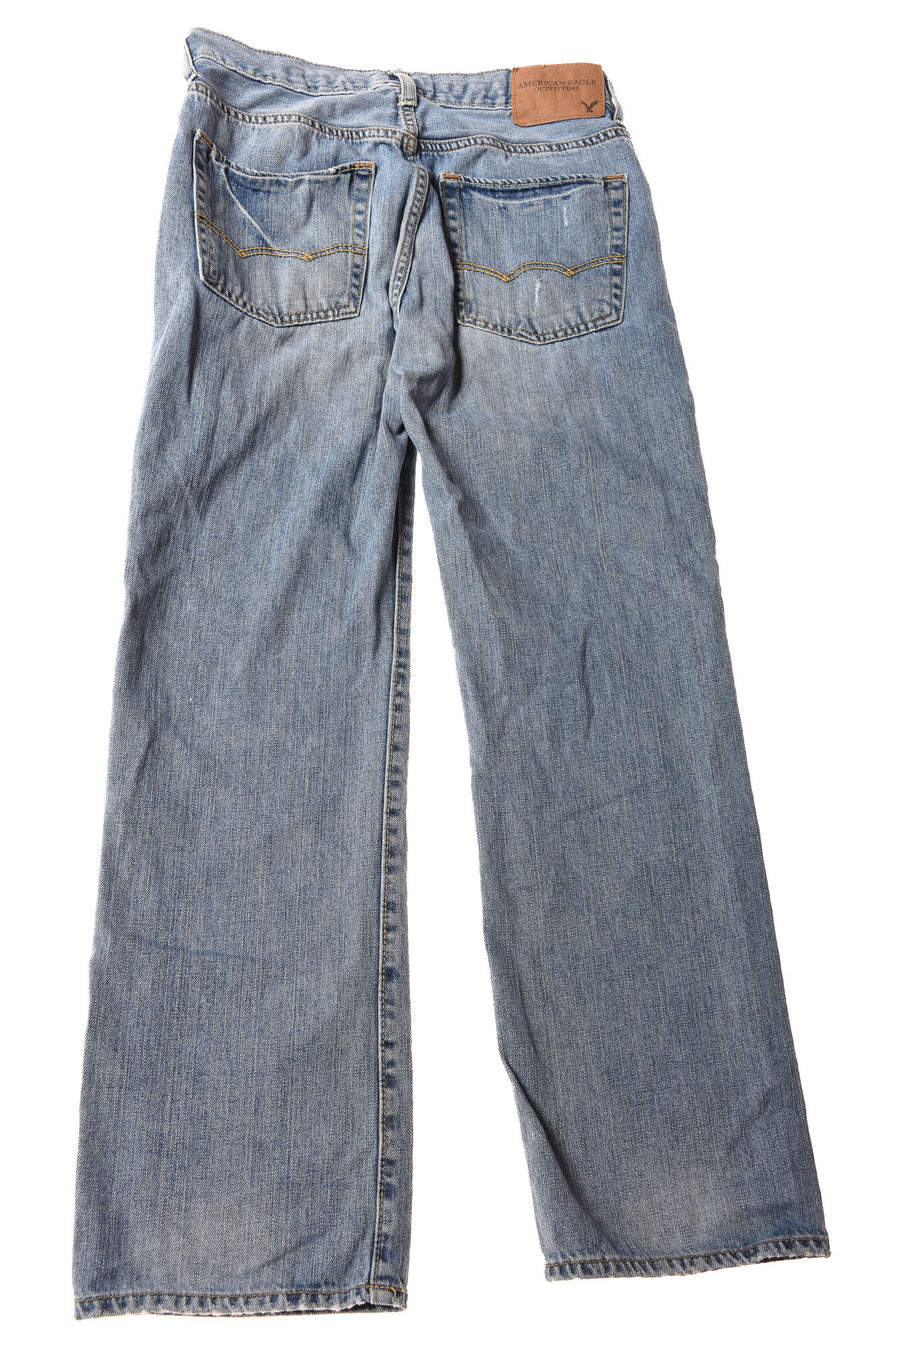 Men's Jeans By American Eagle